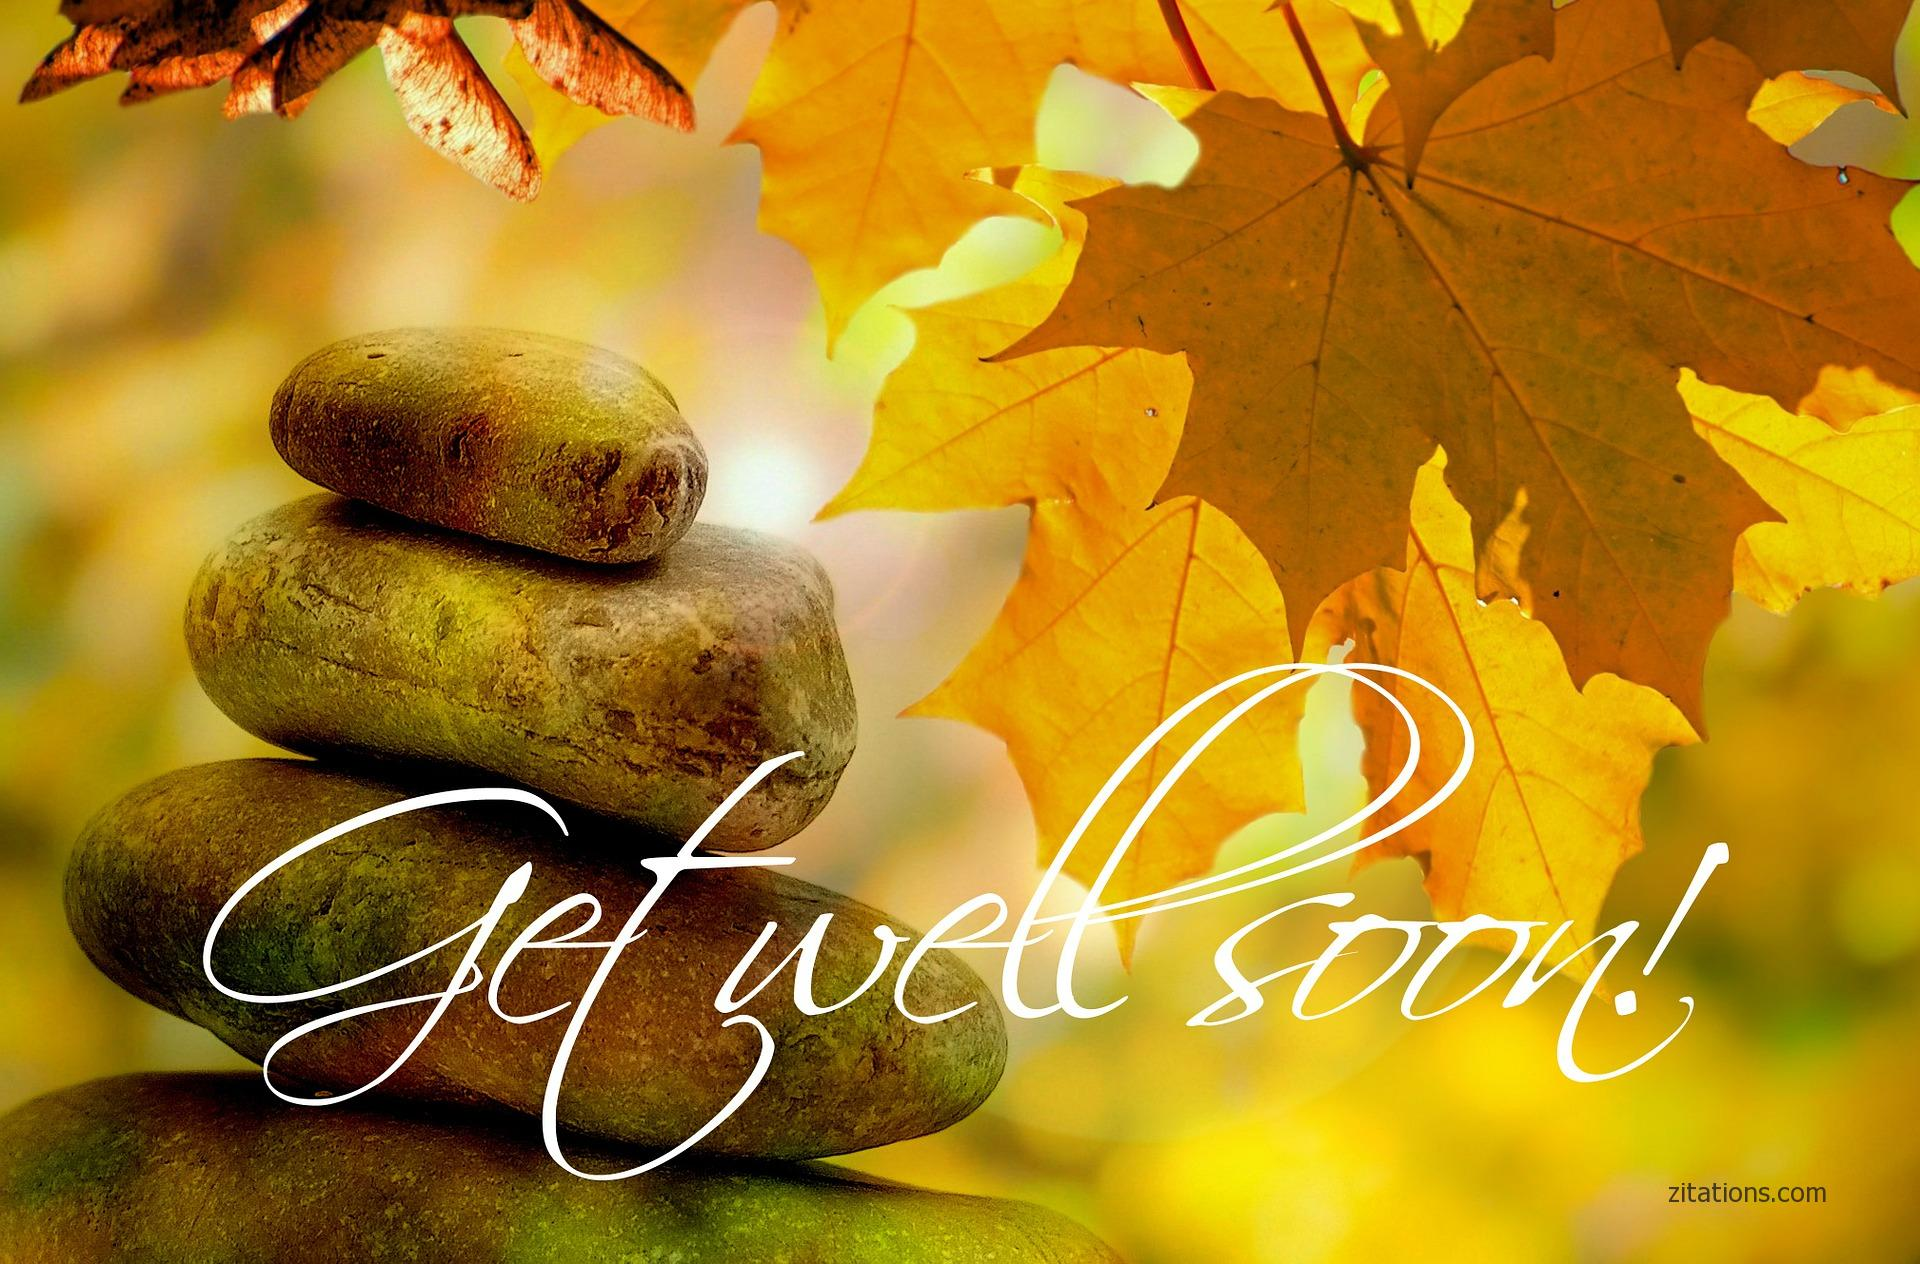 See You Soon Quotes Wallpapers 10 Speedy Recovery Wishes For Healing And Comfort Zitations